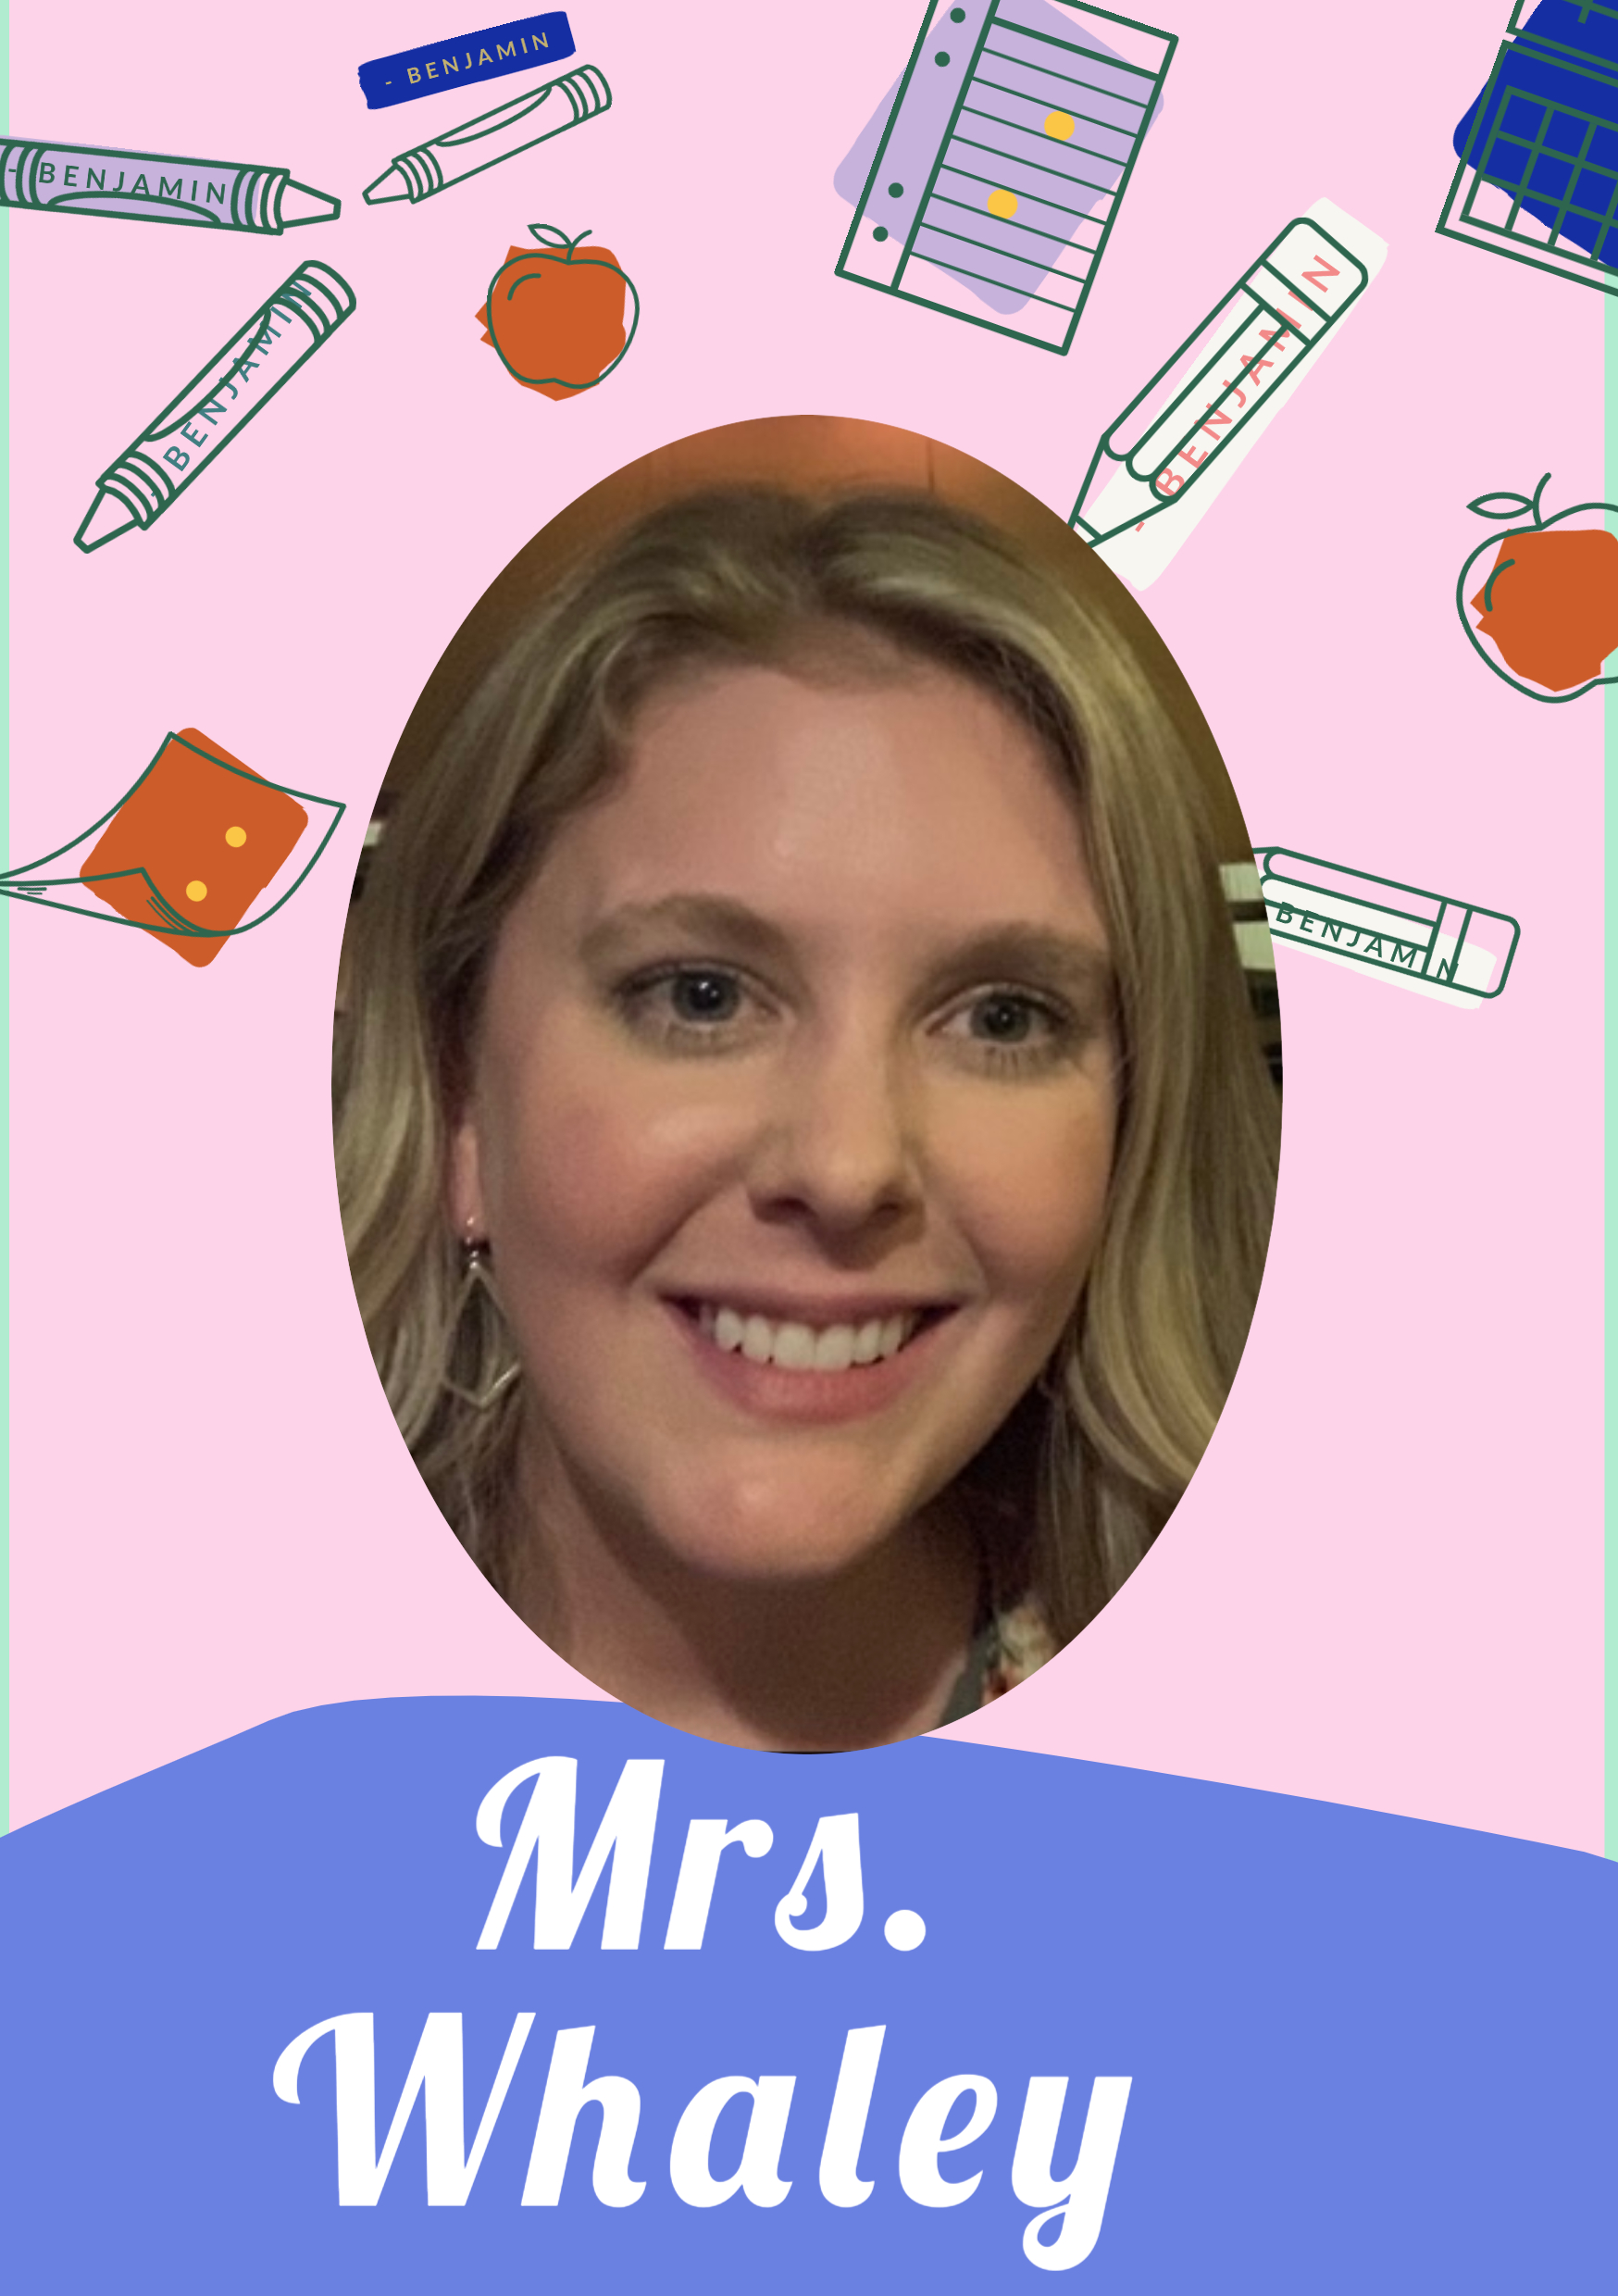 Mrs. Sapphire Whaley is one of our speech therapists.